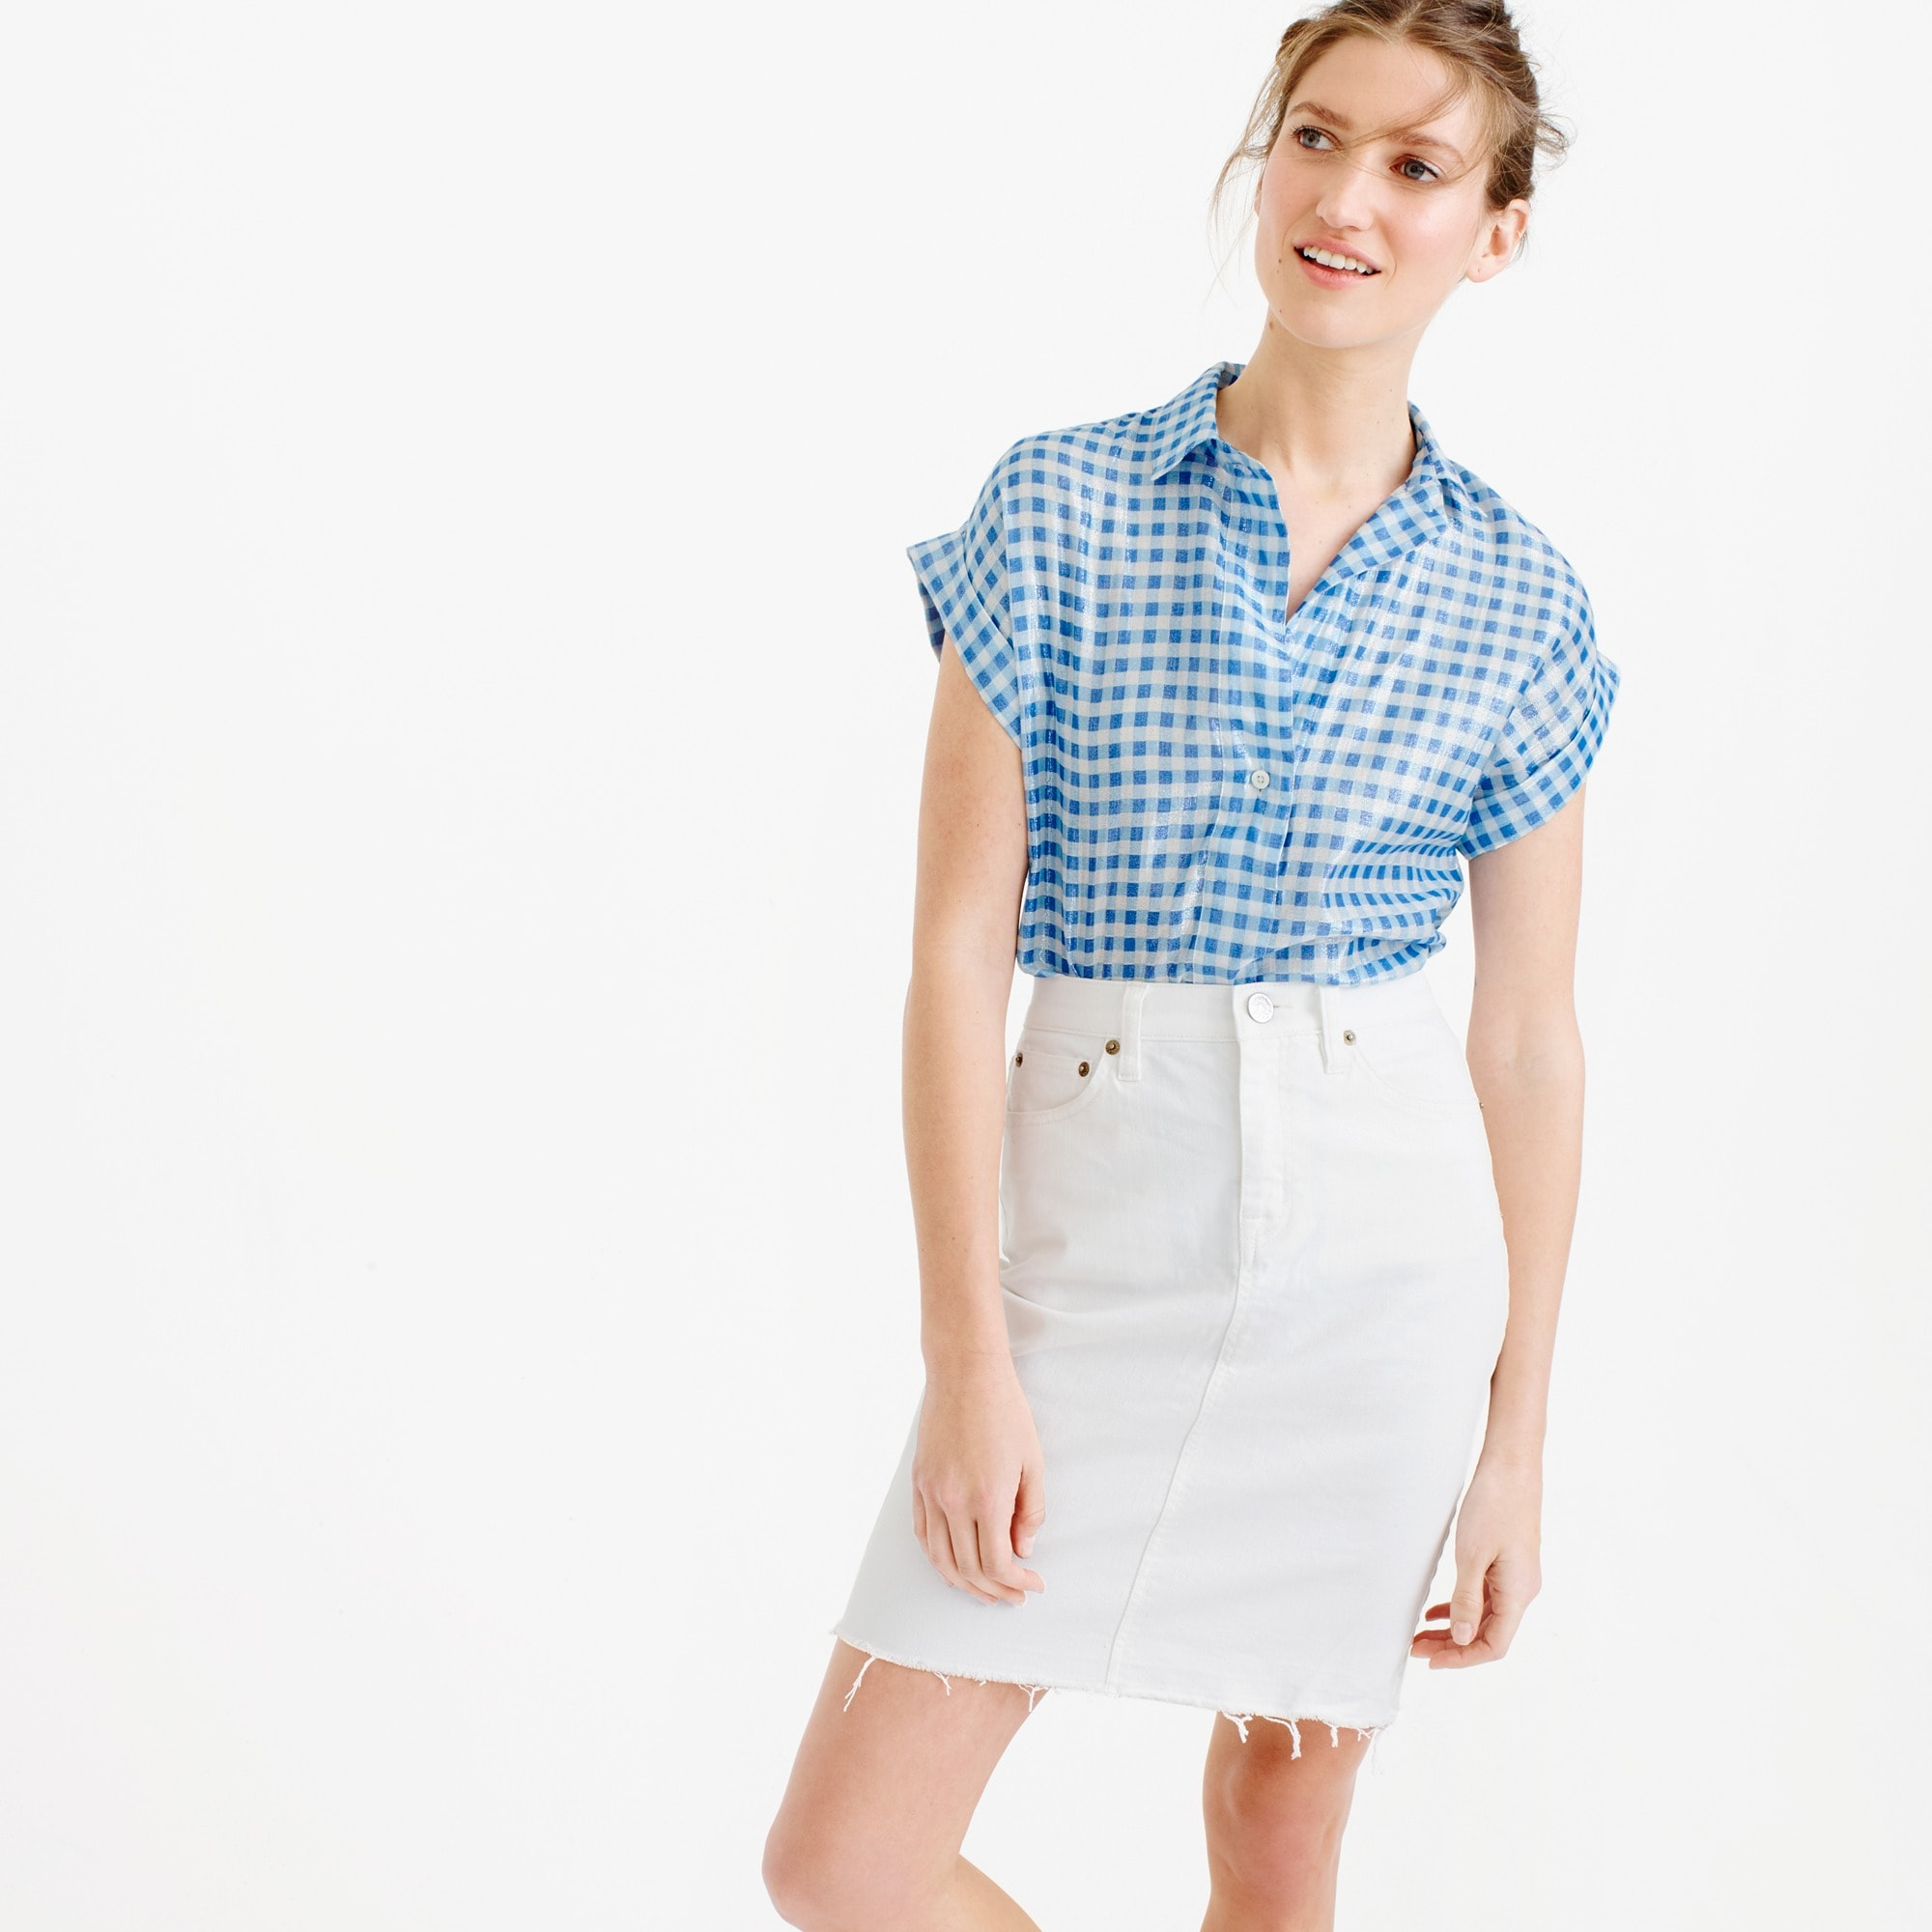 Petite short-sleeve popover shirt in metallic gingham